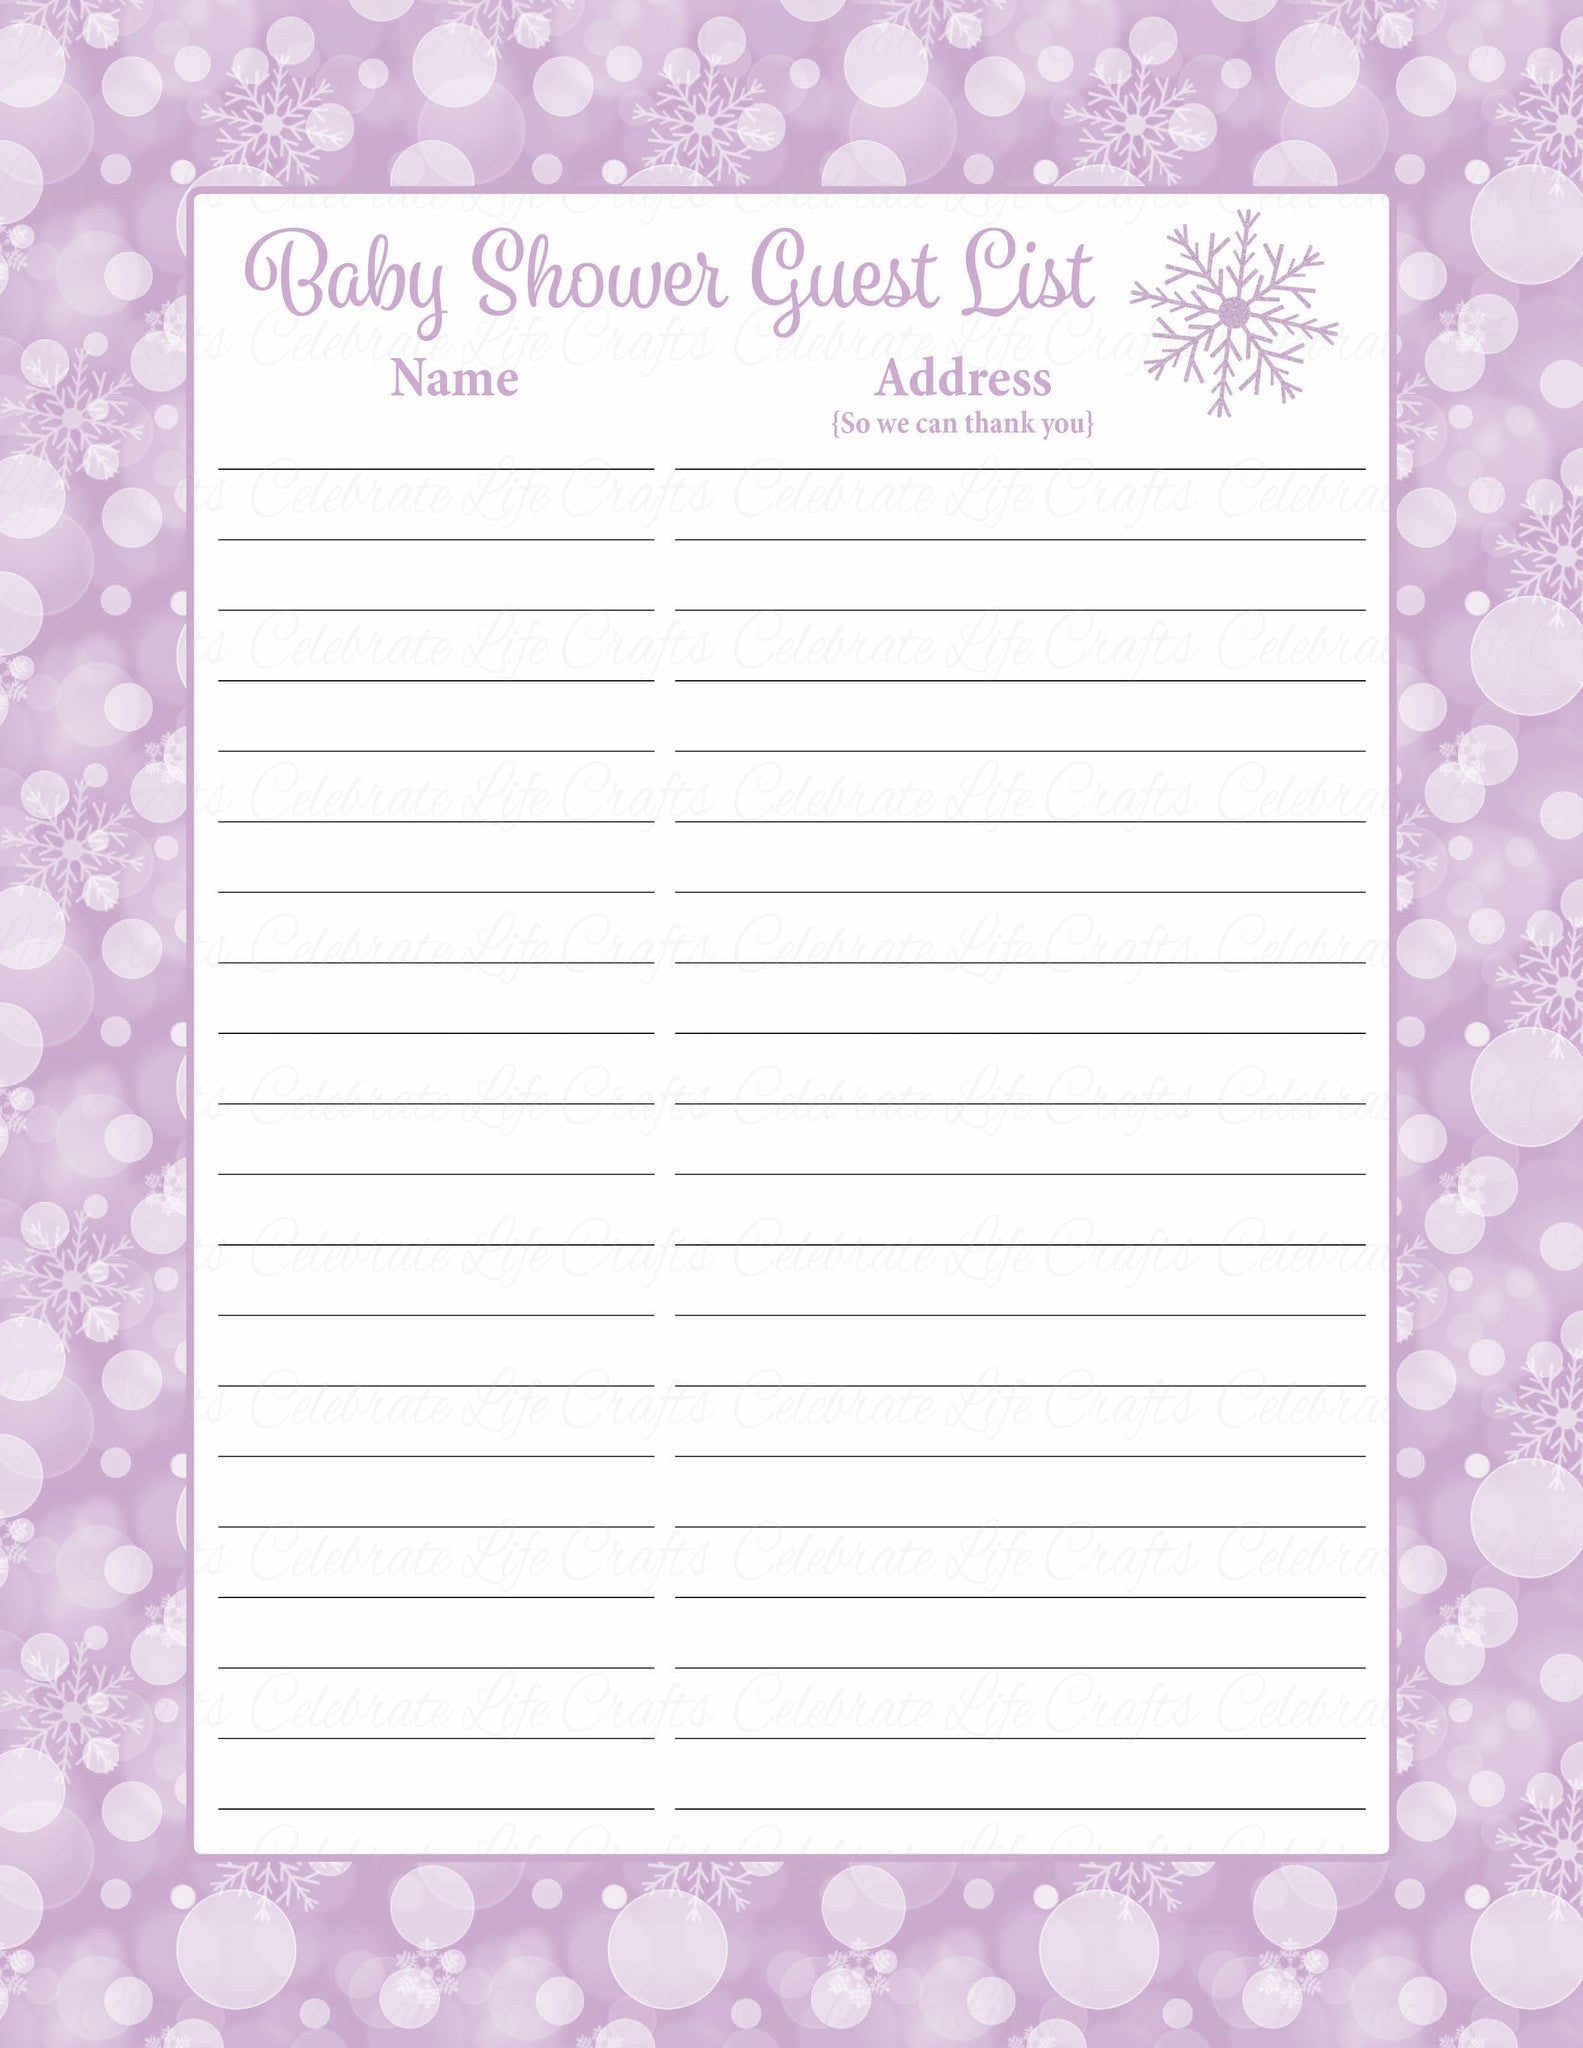 photograph regarding Free Printable Baby Shower Guest Sign in Sheet called Child Shower Visitor Listing Fastened - Printable Down load - Pink Bokeh Wintertime Youngster Shower Decorations - B22004